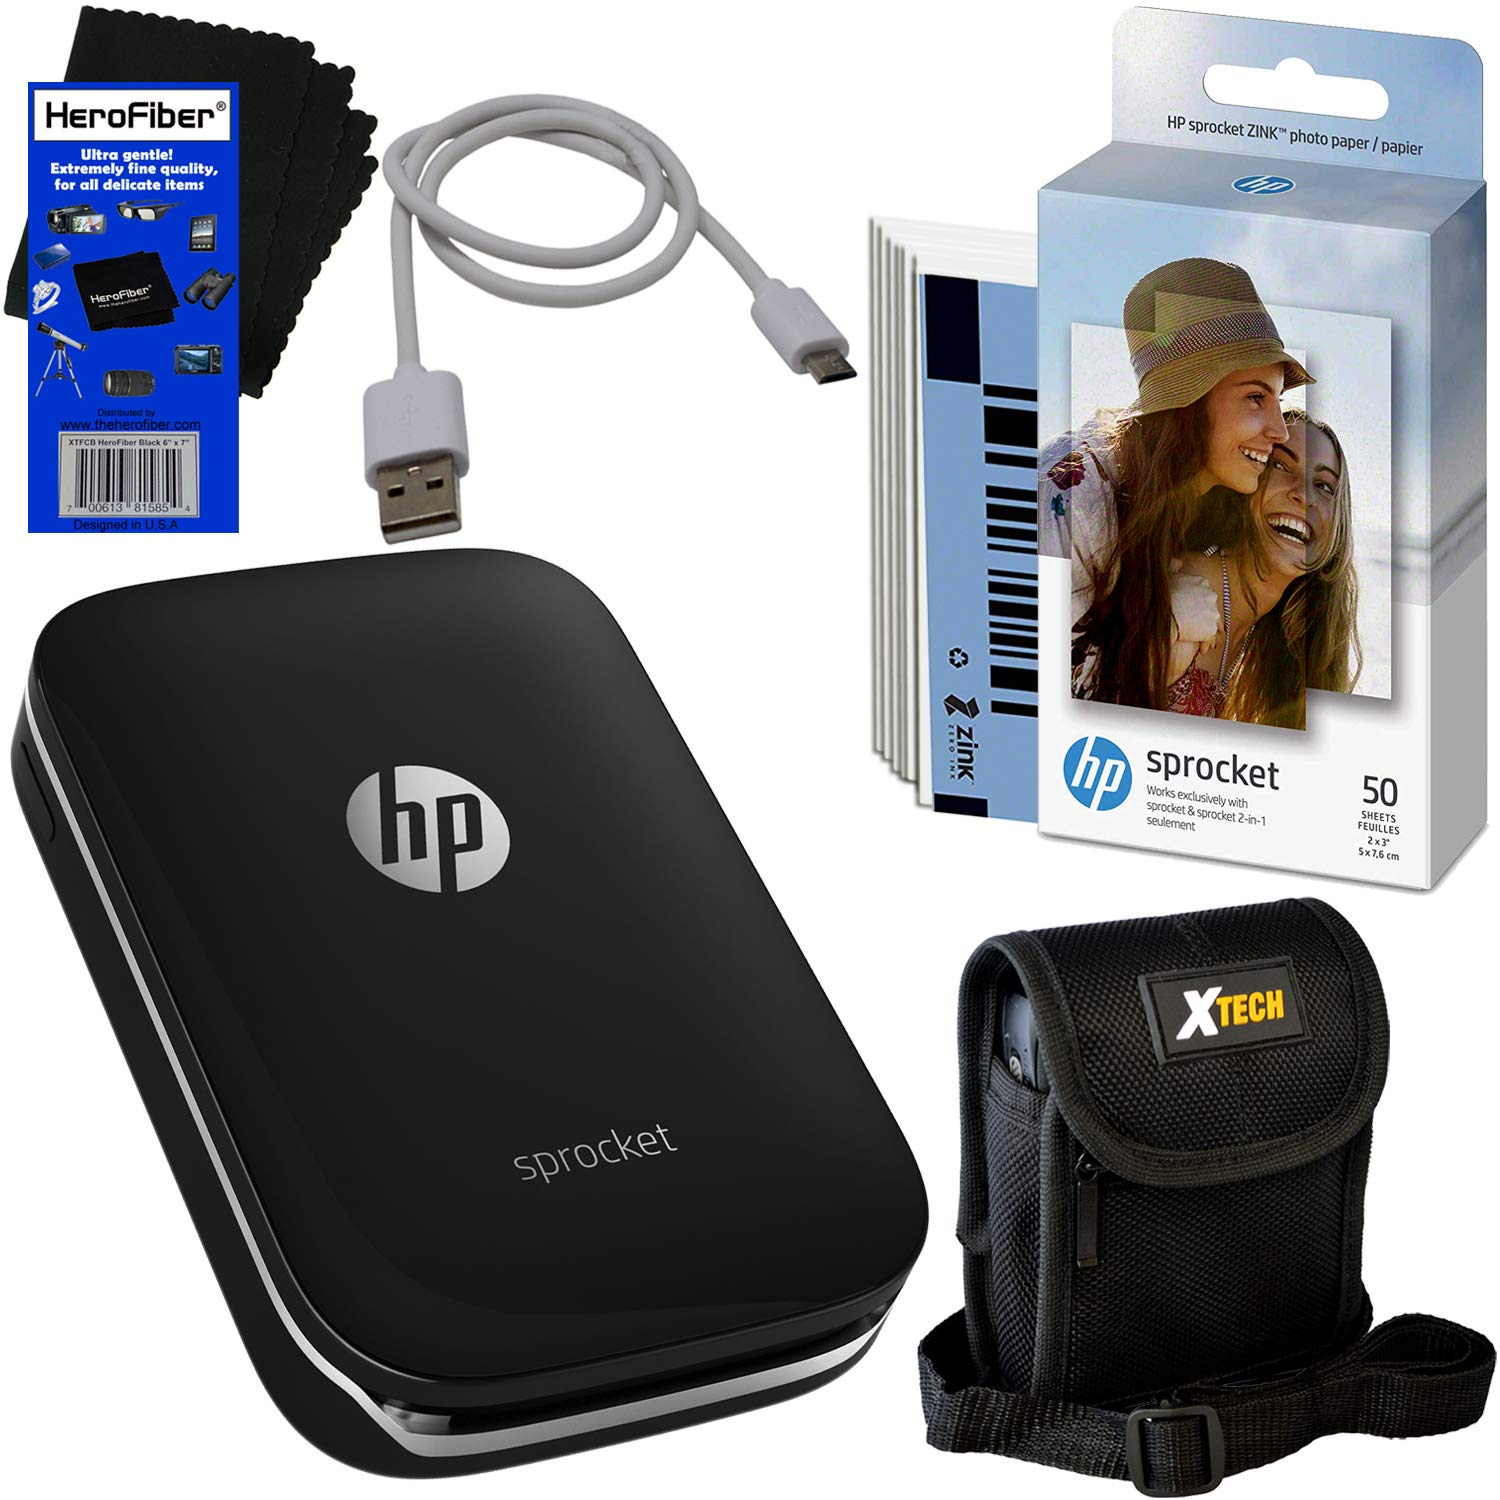 HP Sprocket Photo Printer, Print Social Media Photos on 2x3 Sticky-Backed Paper (Black) + Photo Paper (60 Sheets) + Protective Case + USB Cable + HeroFiber Gentle Cleaning Cloth by HeroFiber